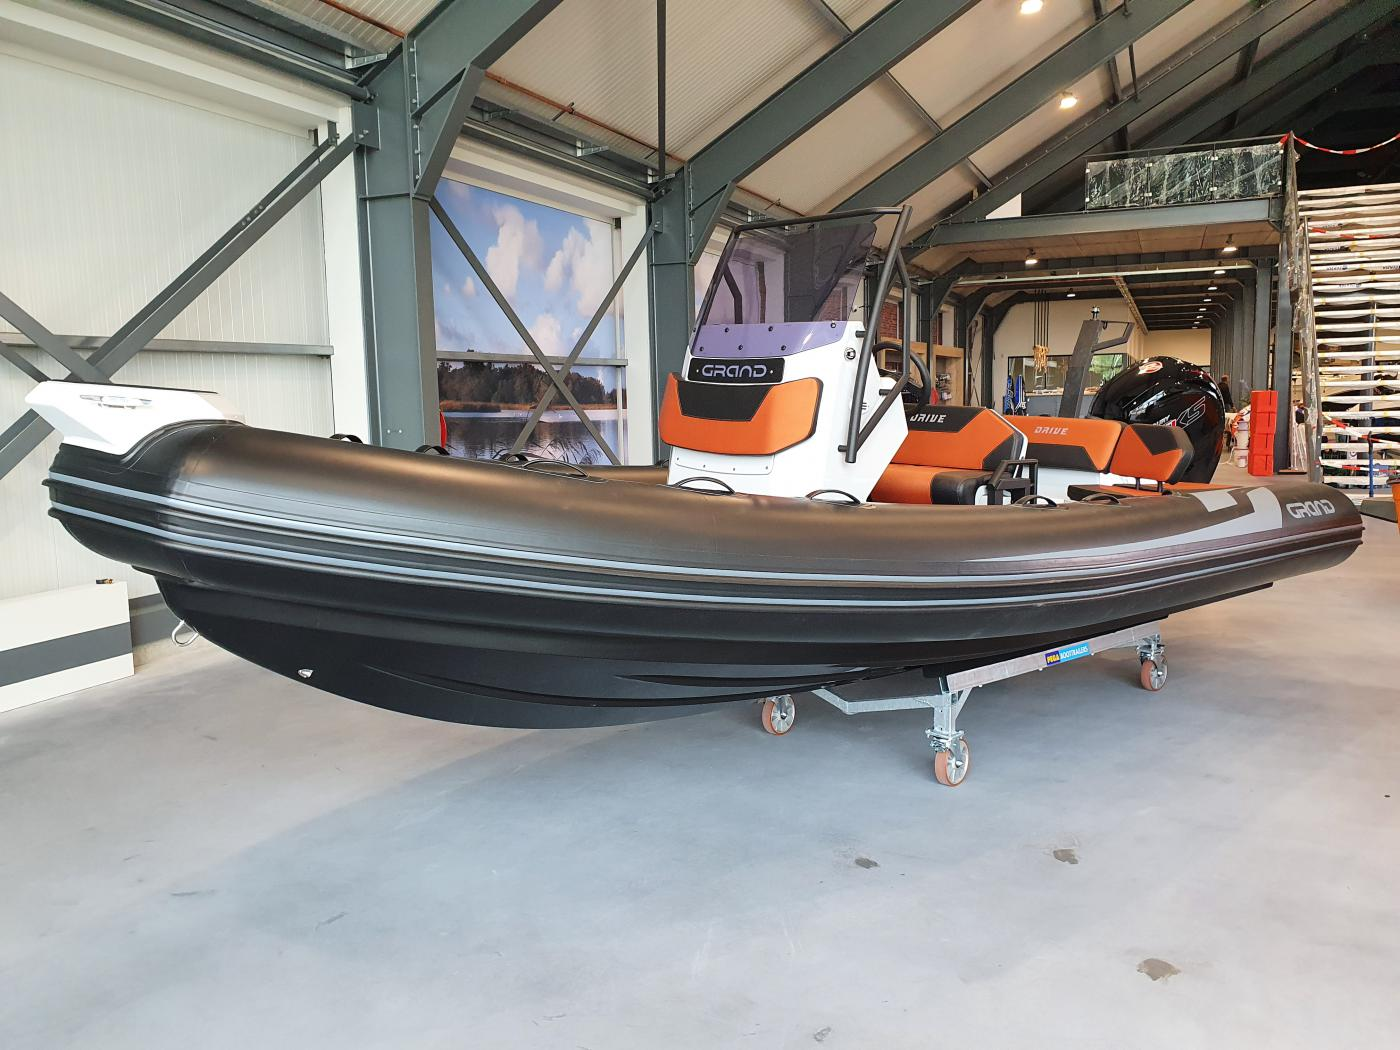 Te koop Grand D600 HL Lux Rubberboten | Bomert Watersport